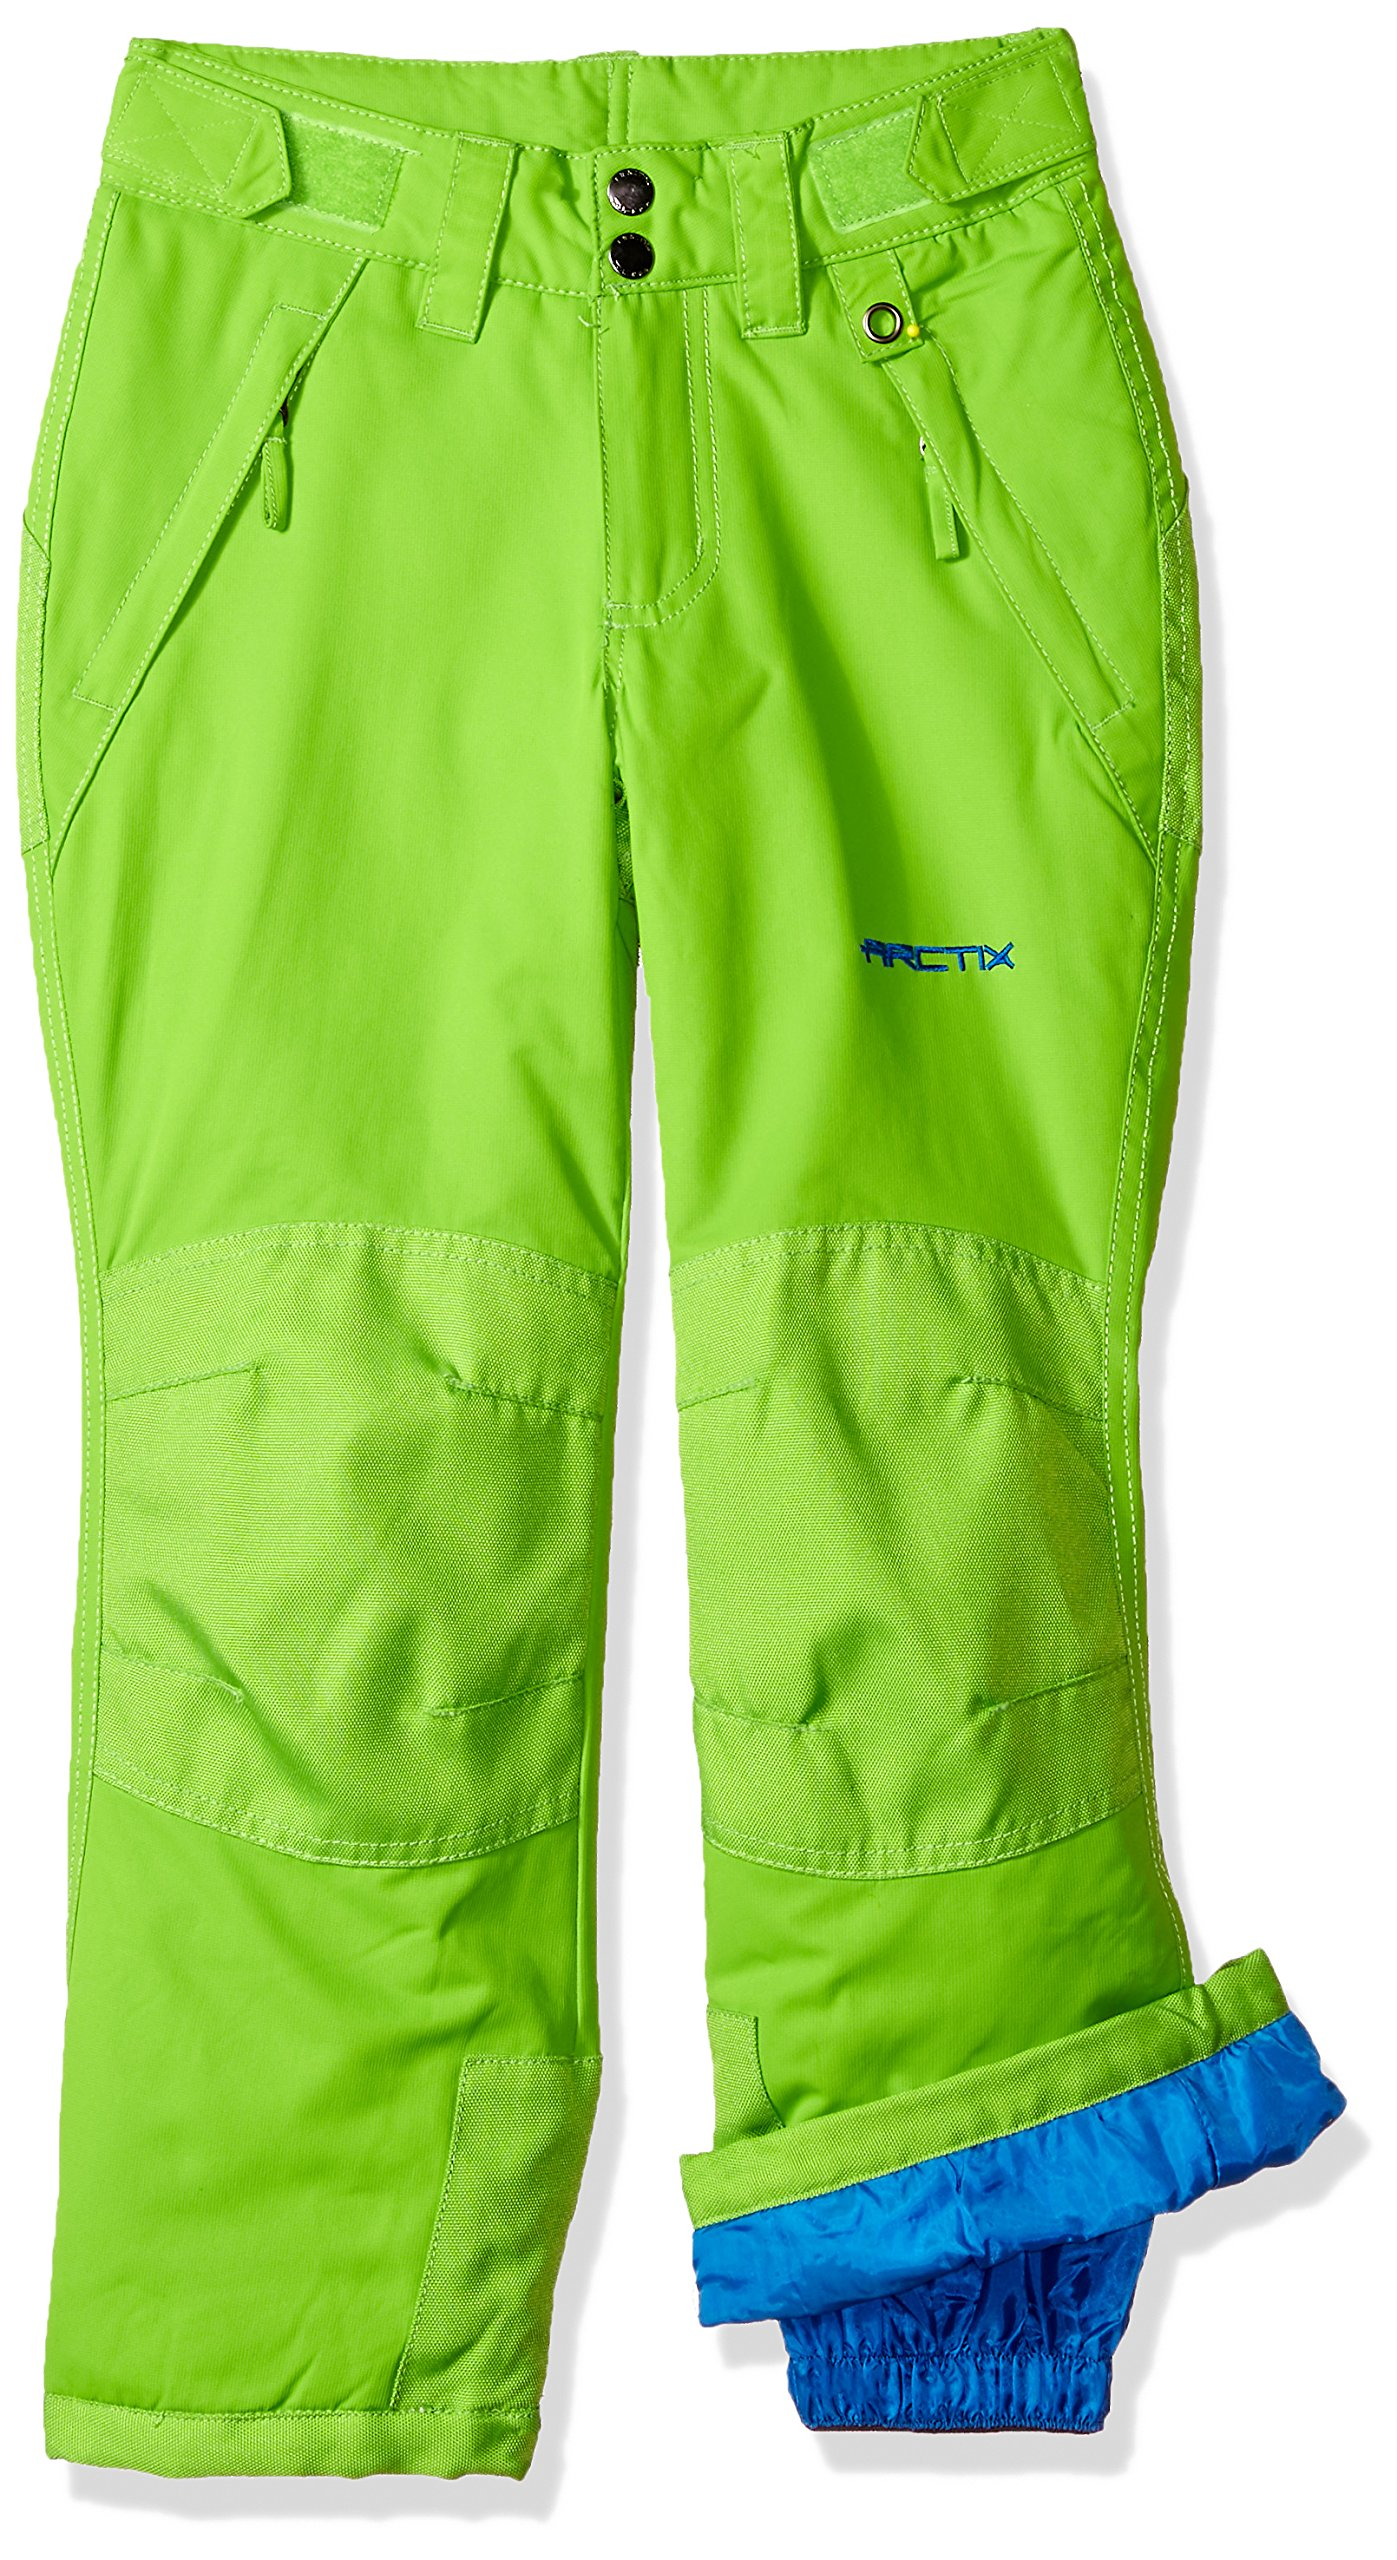 Arctix Youth Snow Pants with Reinforced Knees and Seat, Lime Green, X-Small